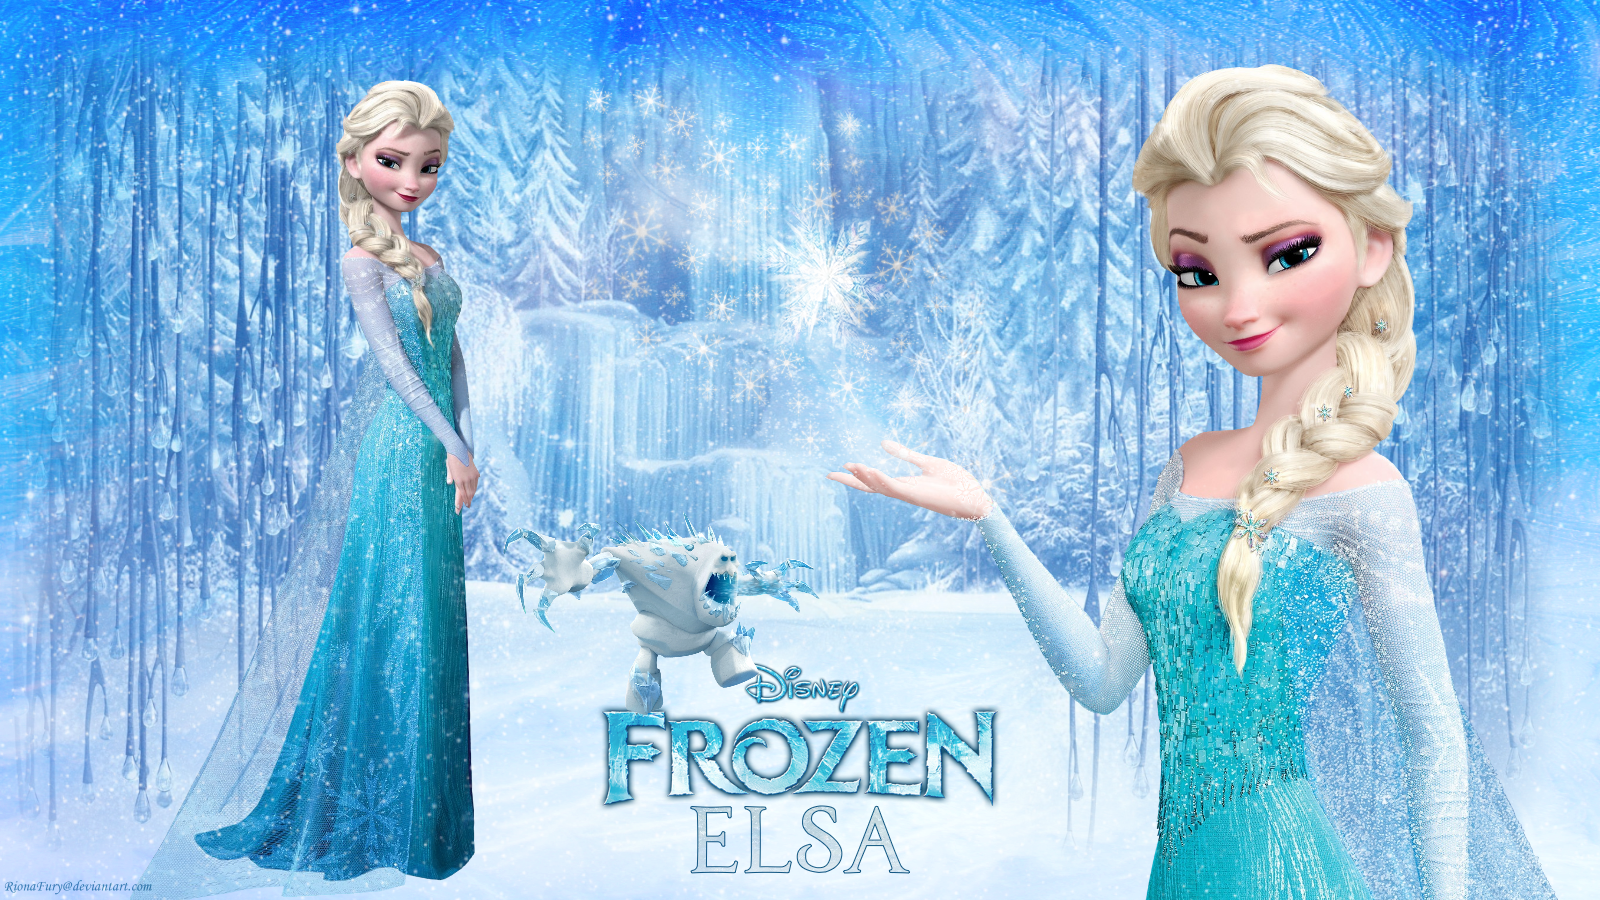 A Video Of The Movie Frozen